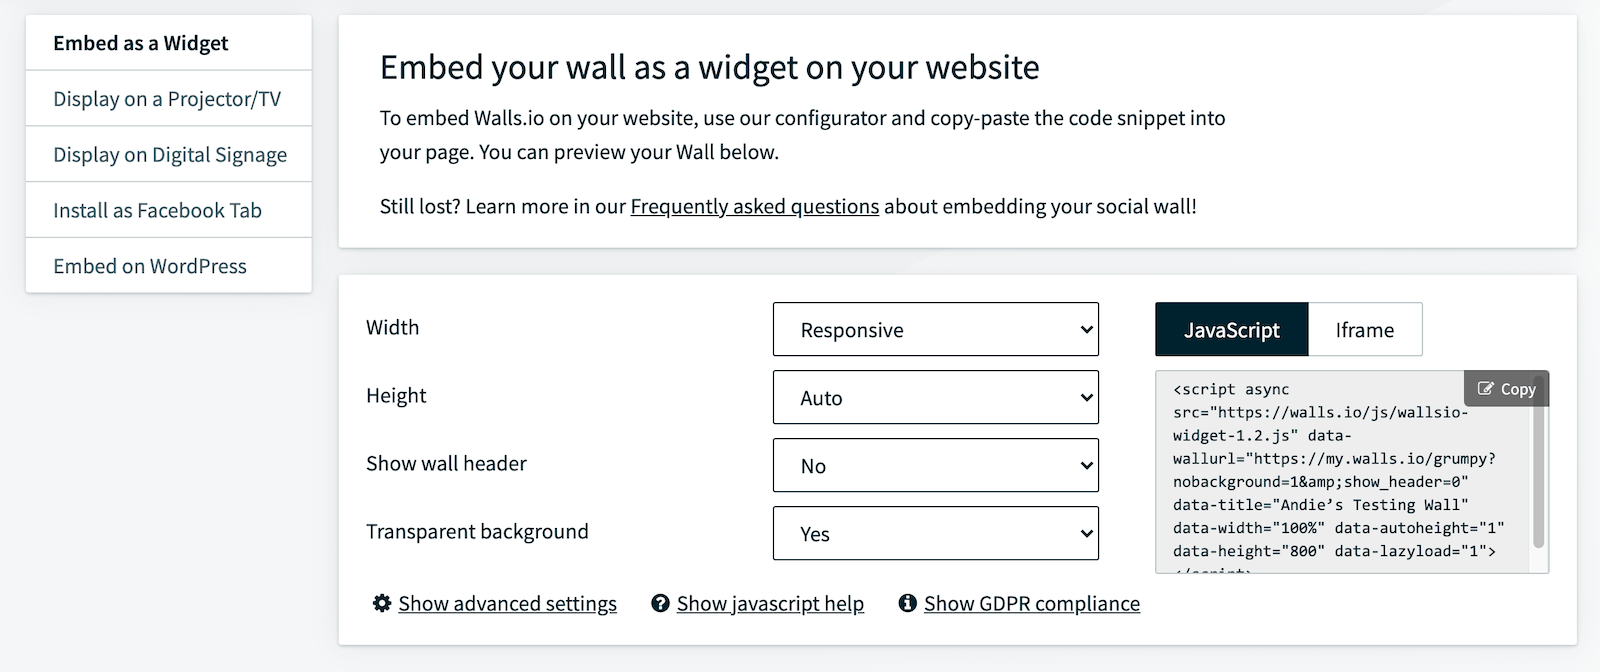 """Screenshot from the Walls.io dashboard showing the """"Embed as a Widget"""" menu where users can copy the JavaScript or iframe embed code for their social media news room."""